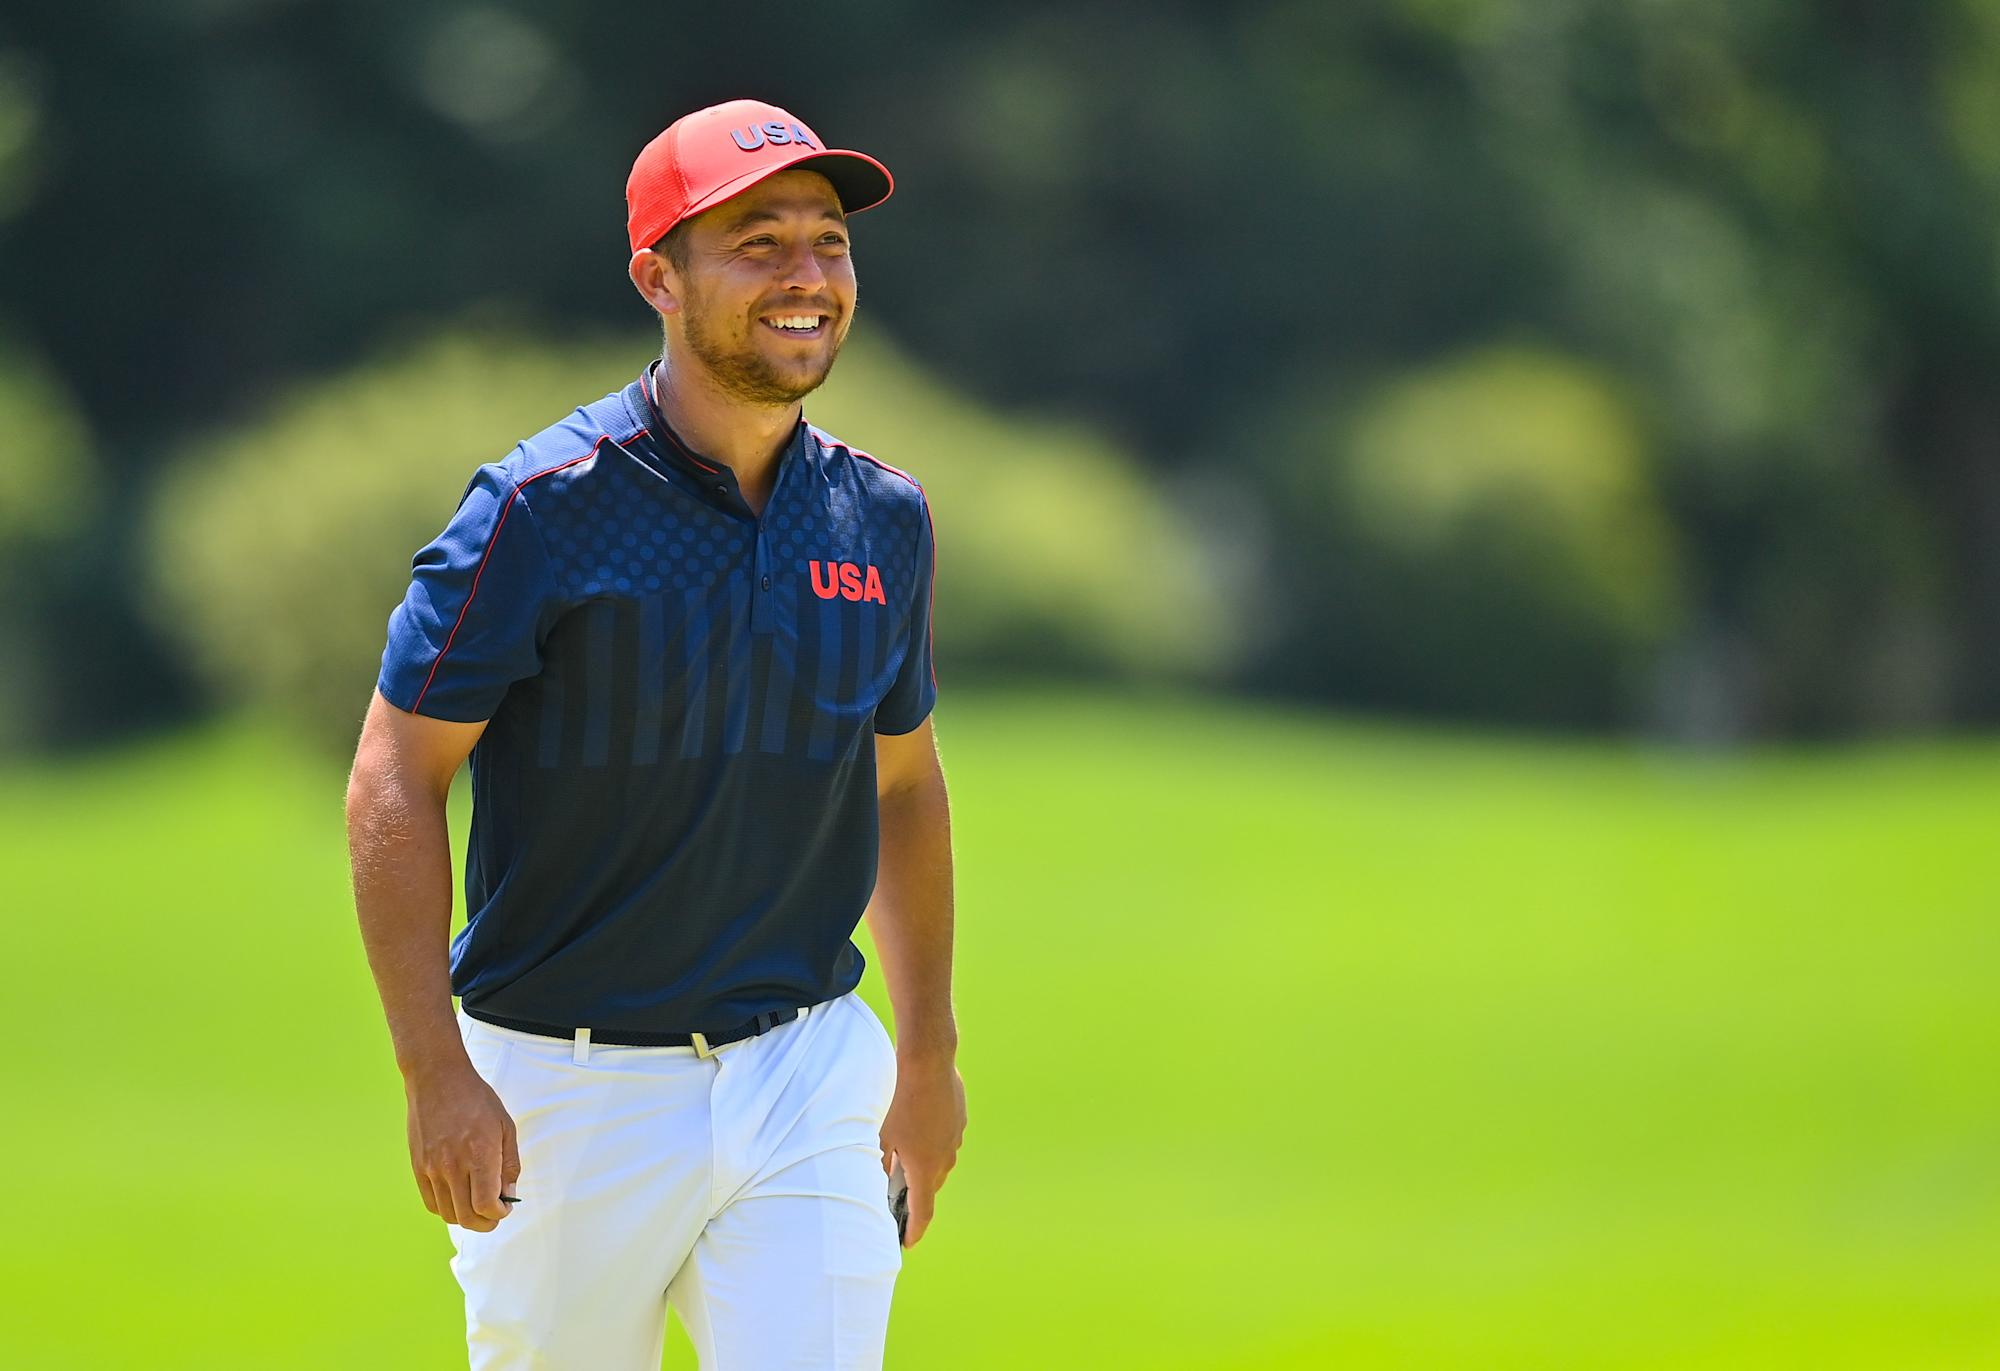 Xander Schauffele fends off Rory Sabbatini's Olympic-record round to win golf gold medal - Yahoo Sports